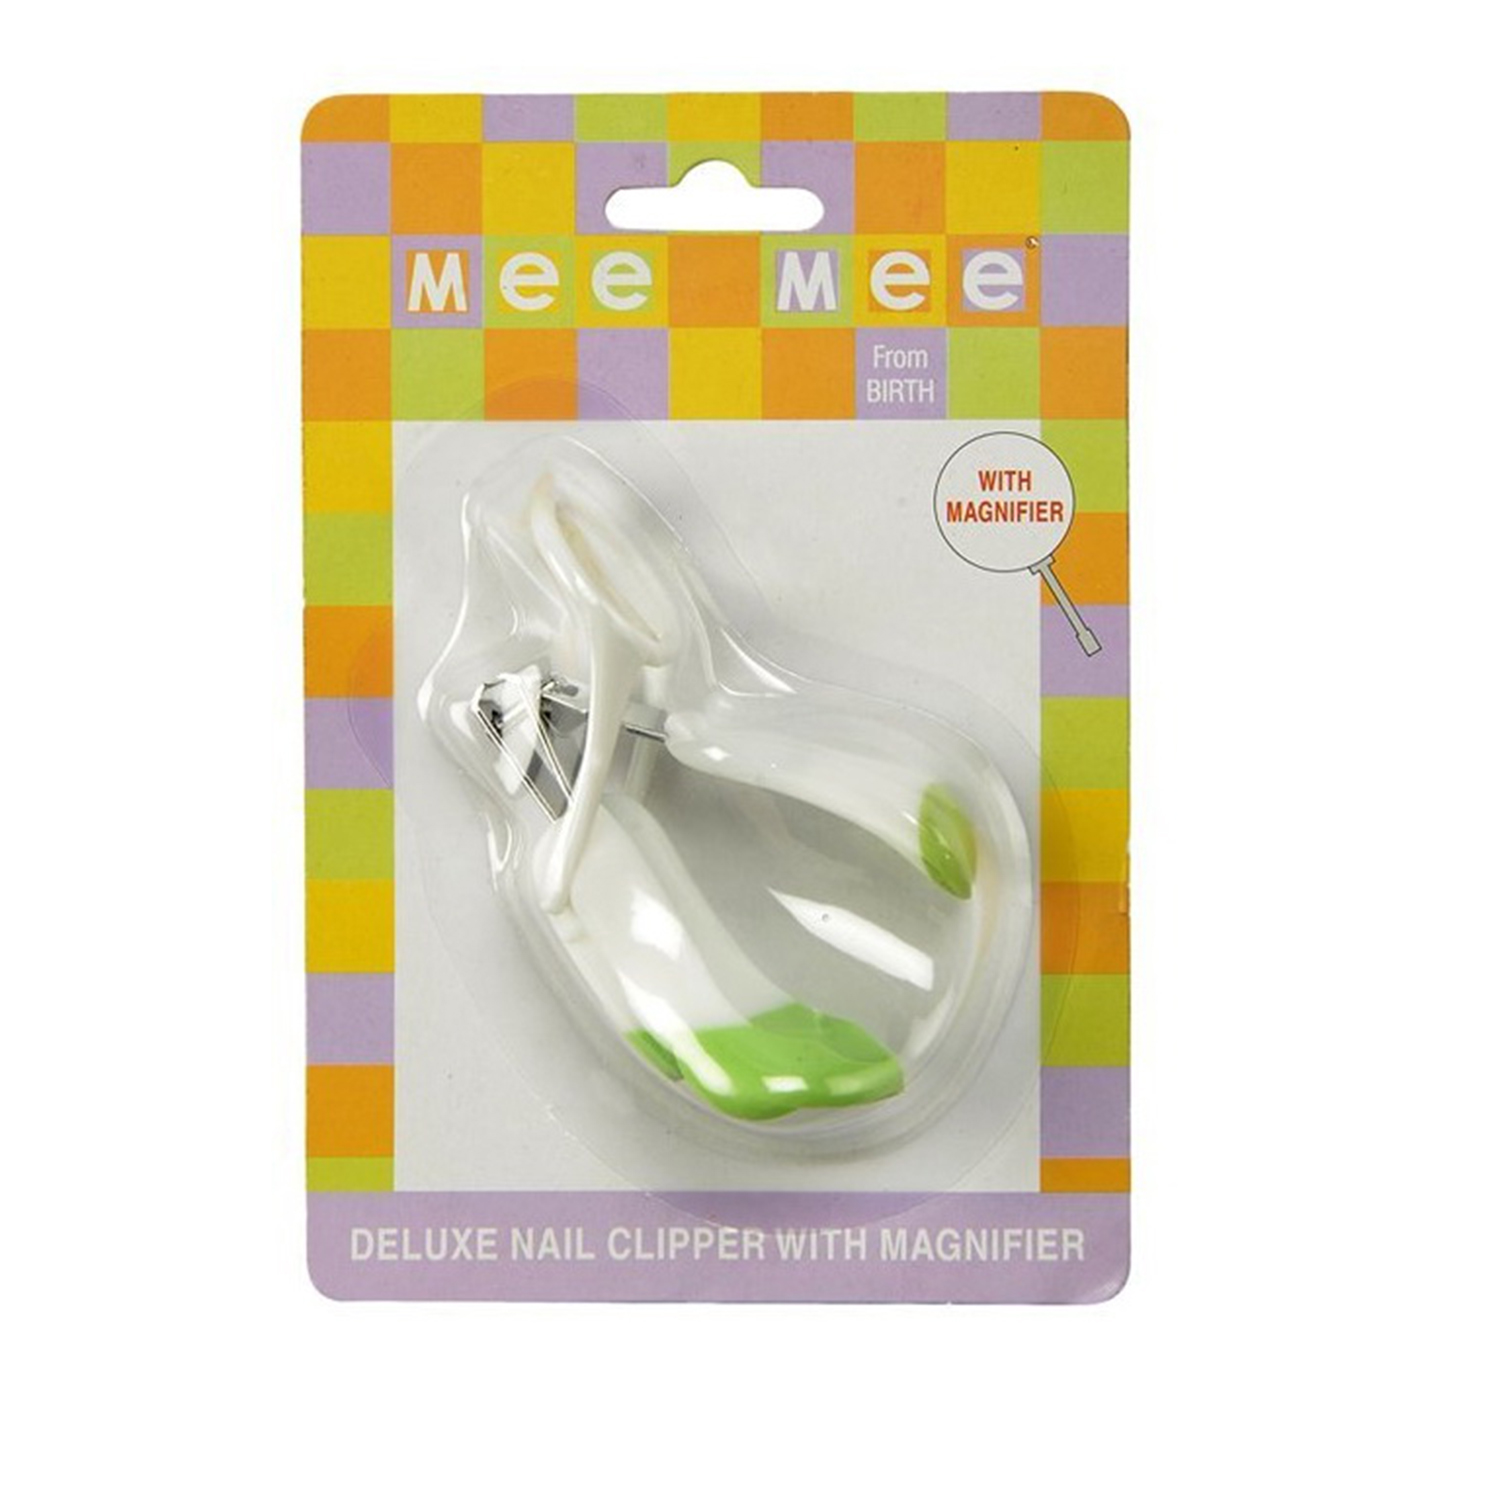 Mee Mee MM 3831 Nail Clipper With Magnifier